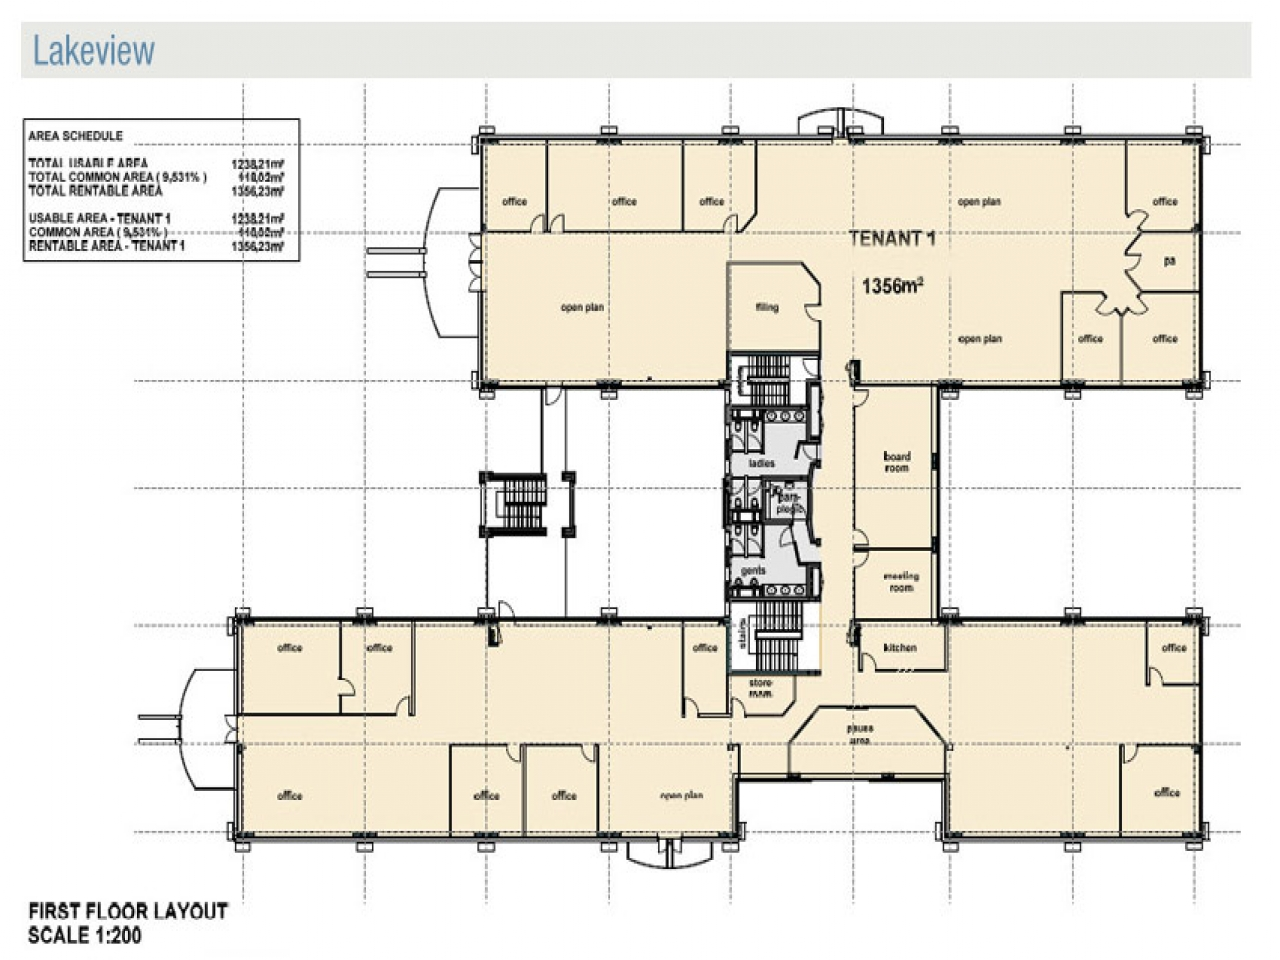 Design your own home plans plans and home designs free for Design your own blueprints free